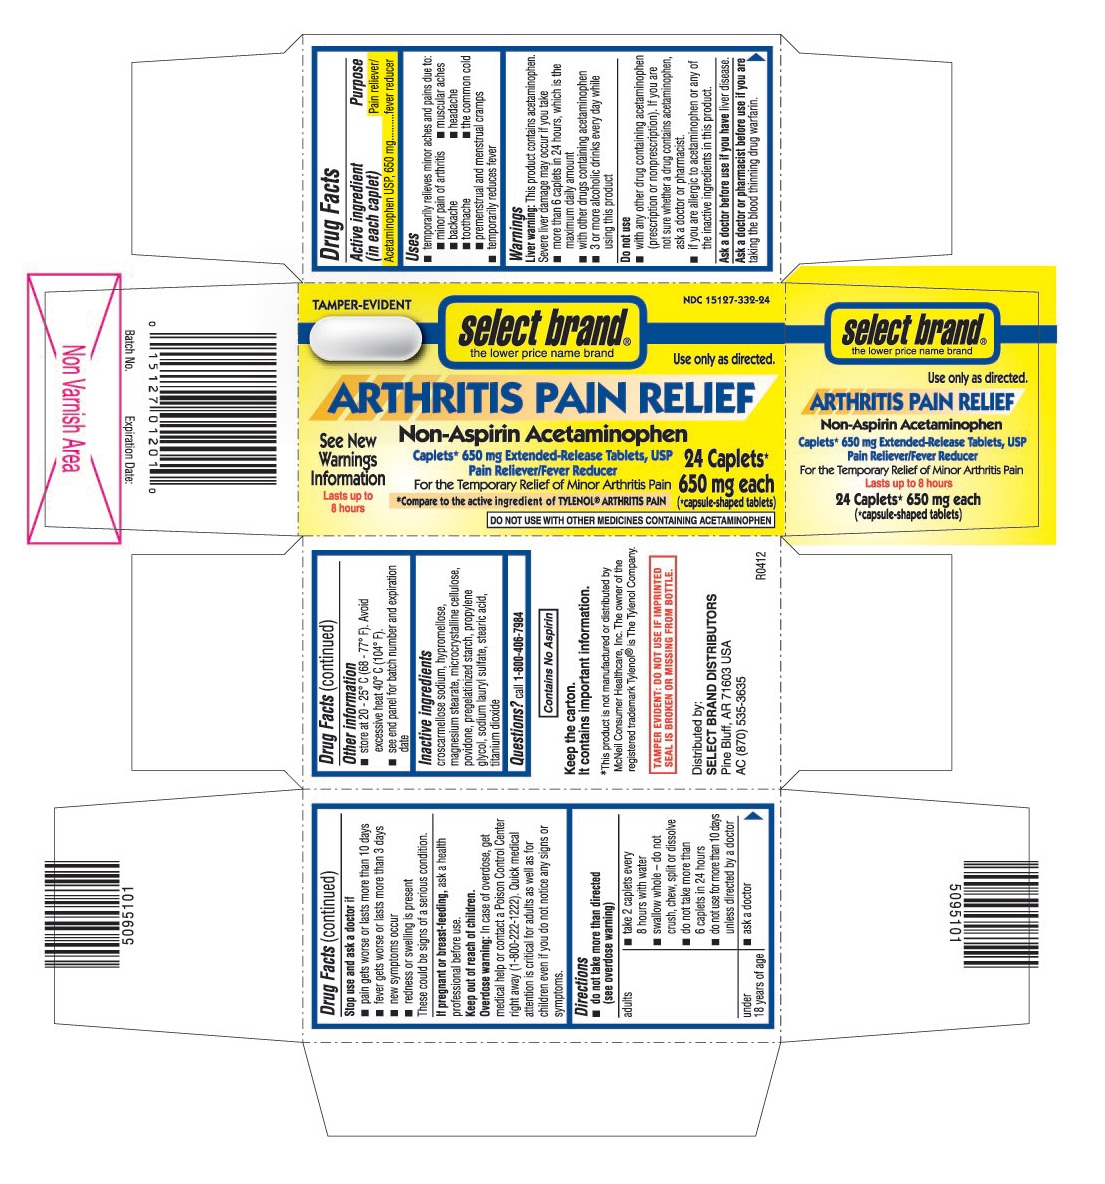 This is the 24 count blister carton label for Select Brand Acetaminophen extended-release tablets, USP 650 mg.